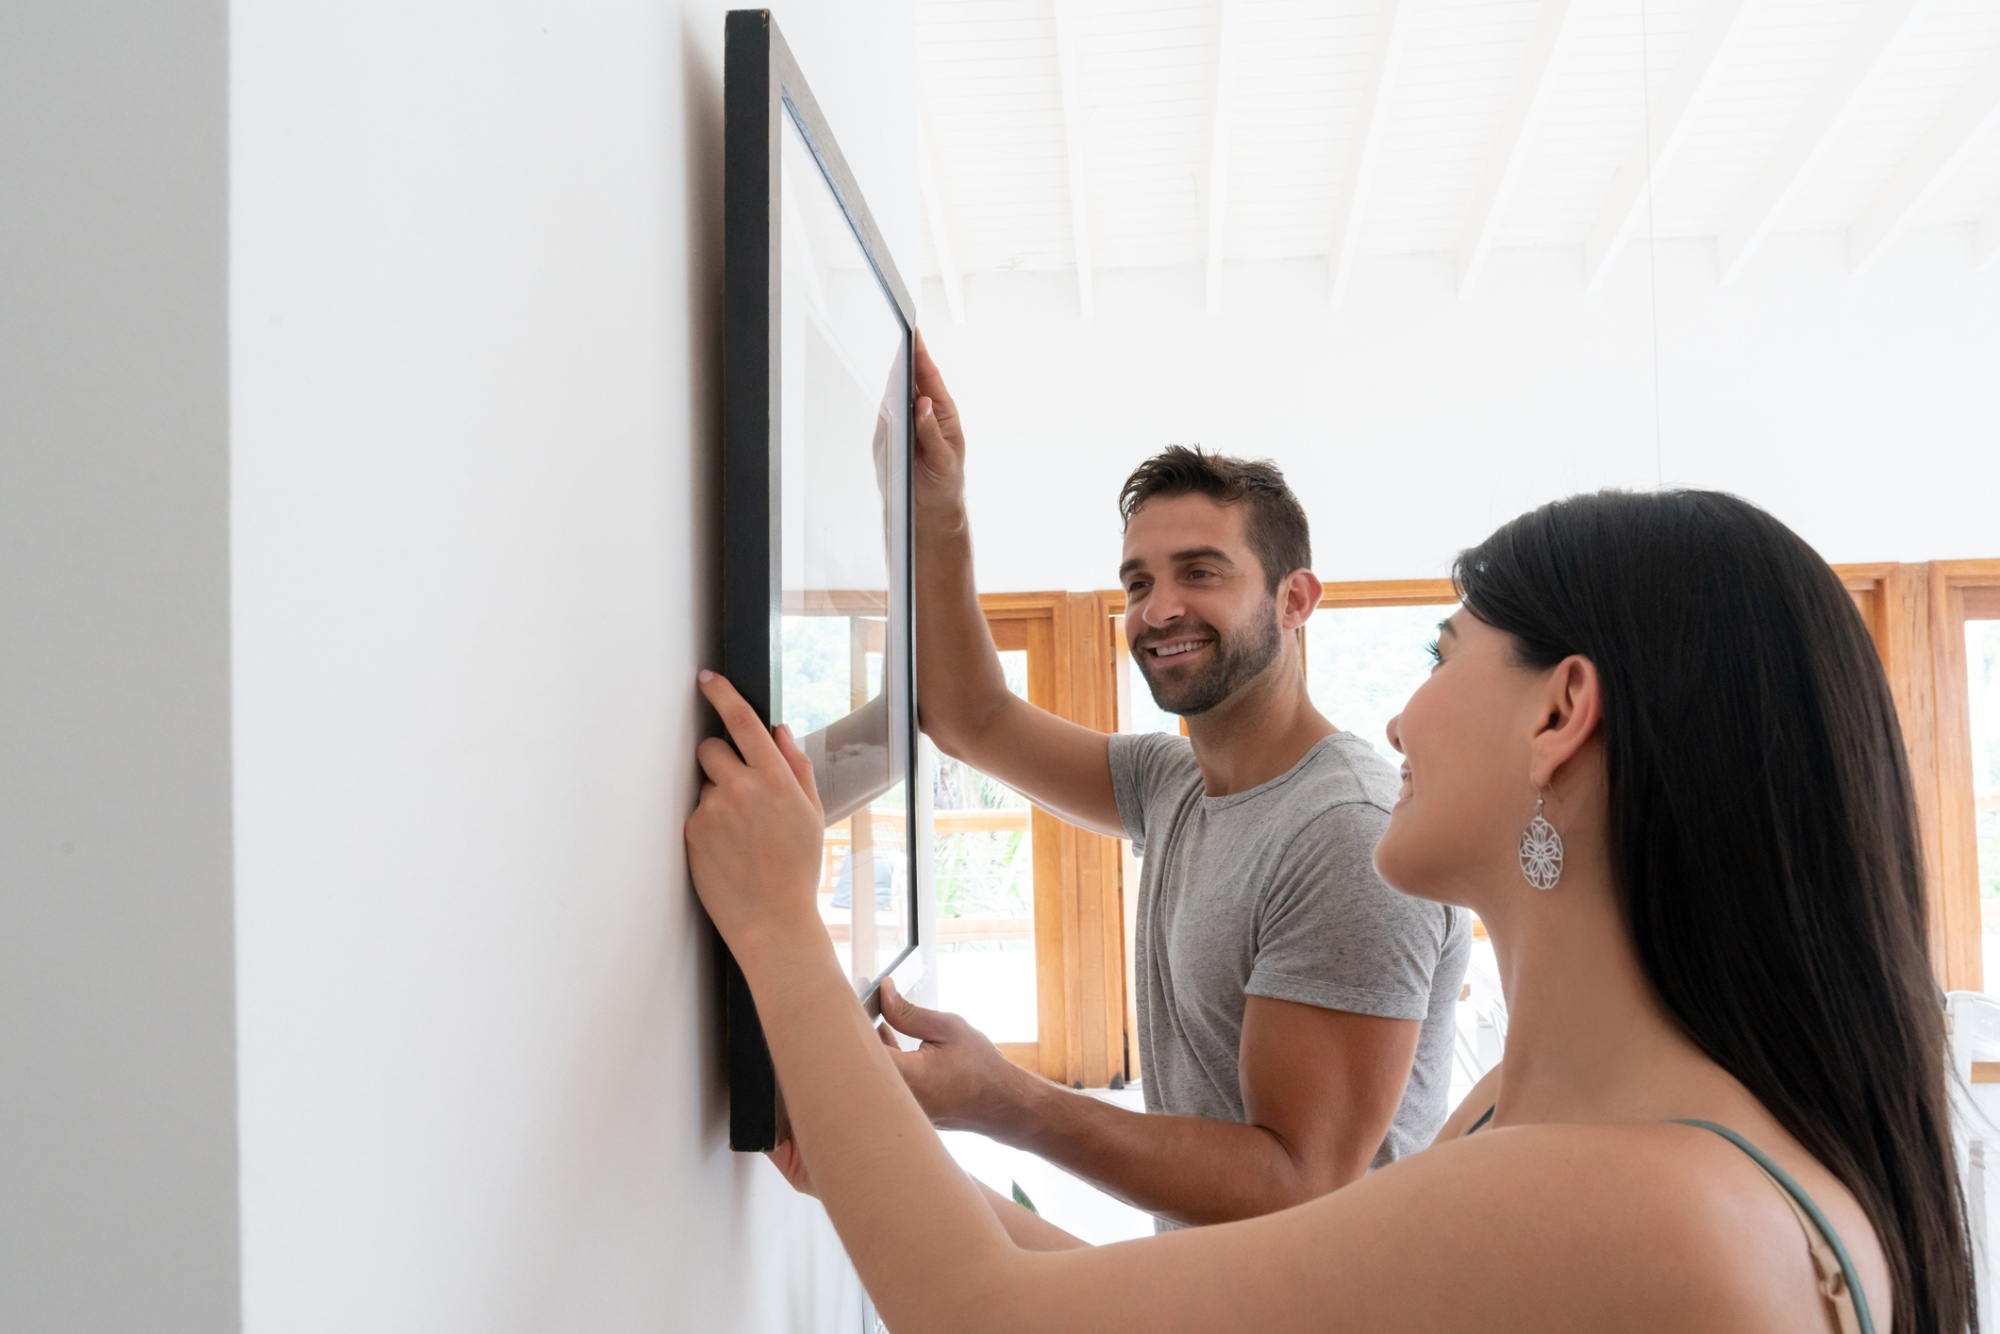 how to hang photos image